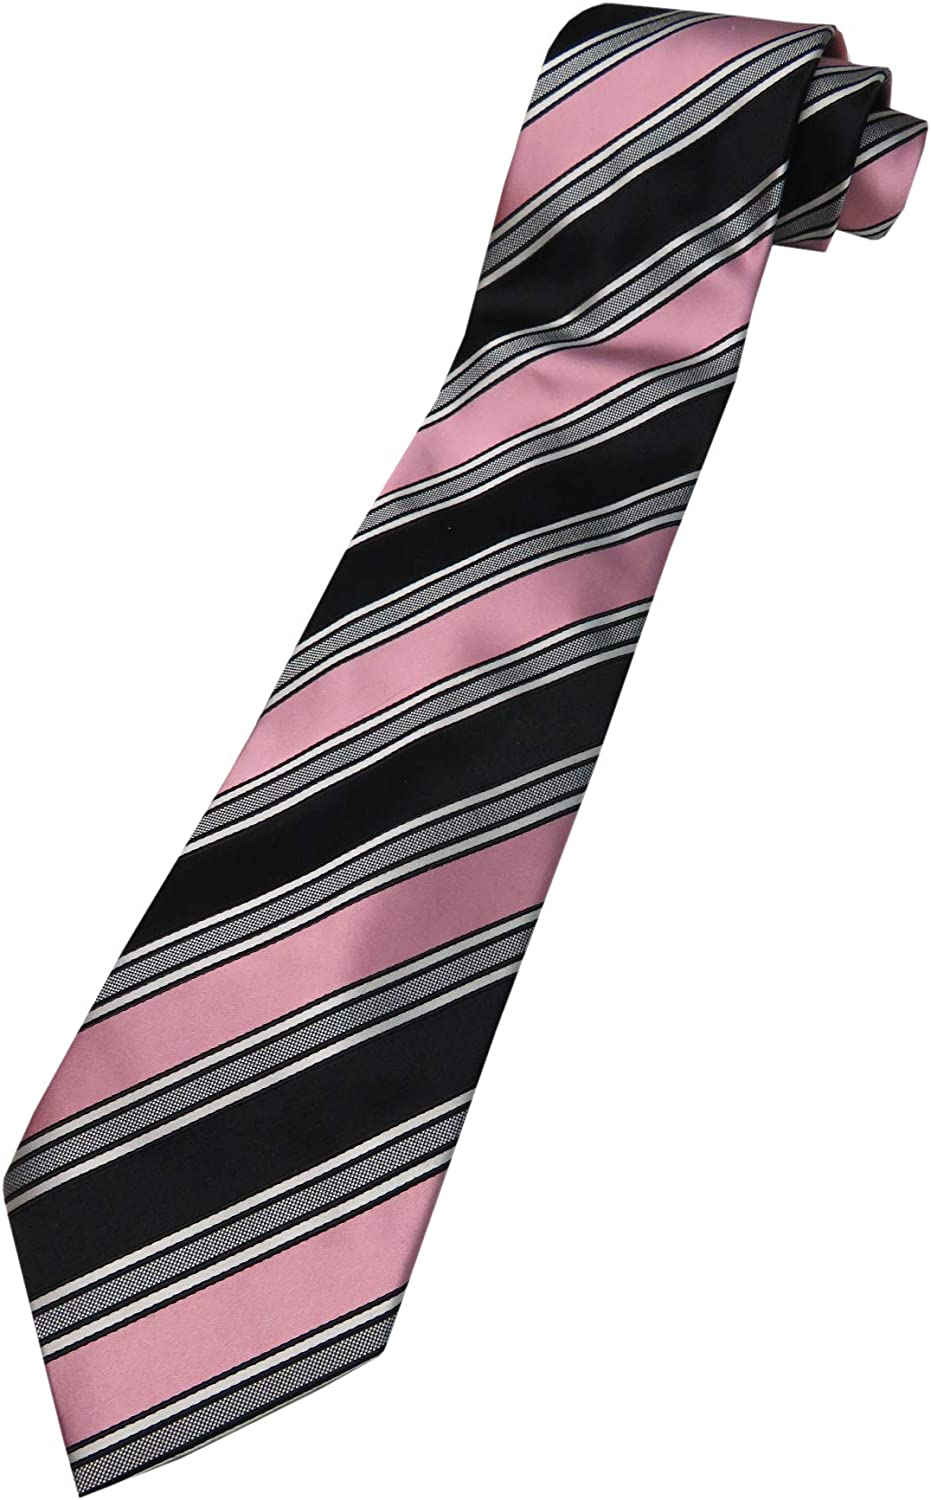 Donald Trump Neck Tie Black and Pink with Gold Emblem